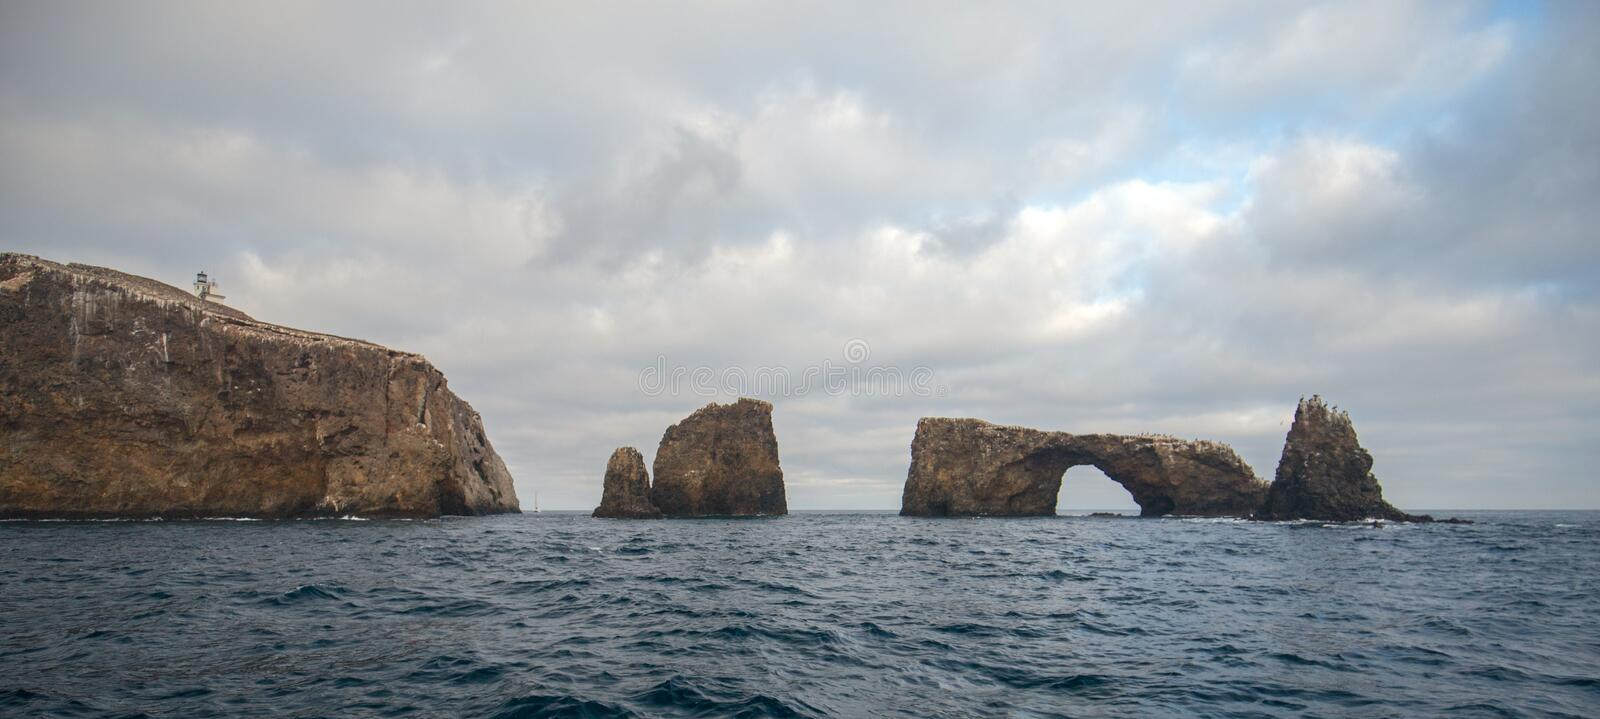 Arch Rock and Lighthouse of Anacapa Island of the Channel Islands National Park off the gold coast of California United States.  royalty free stock image